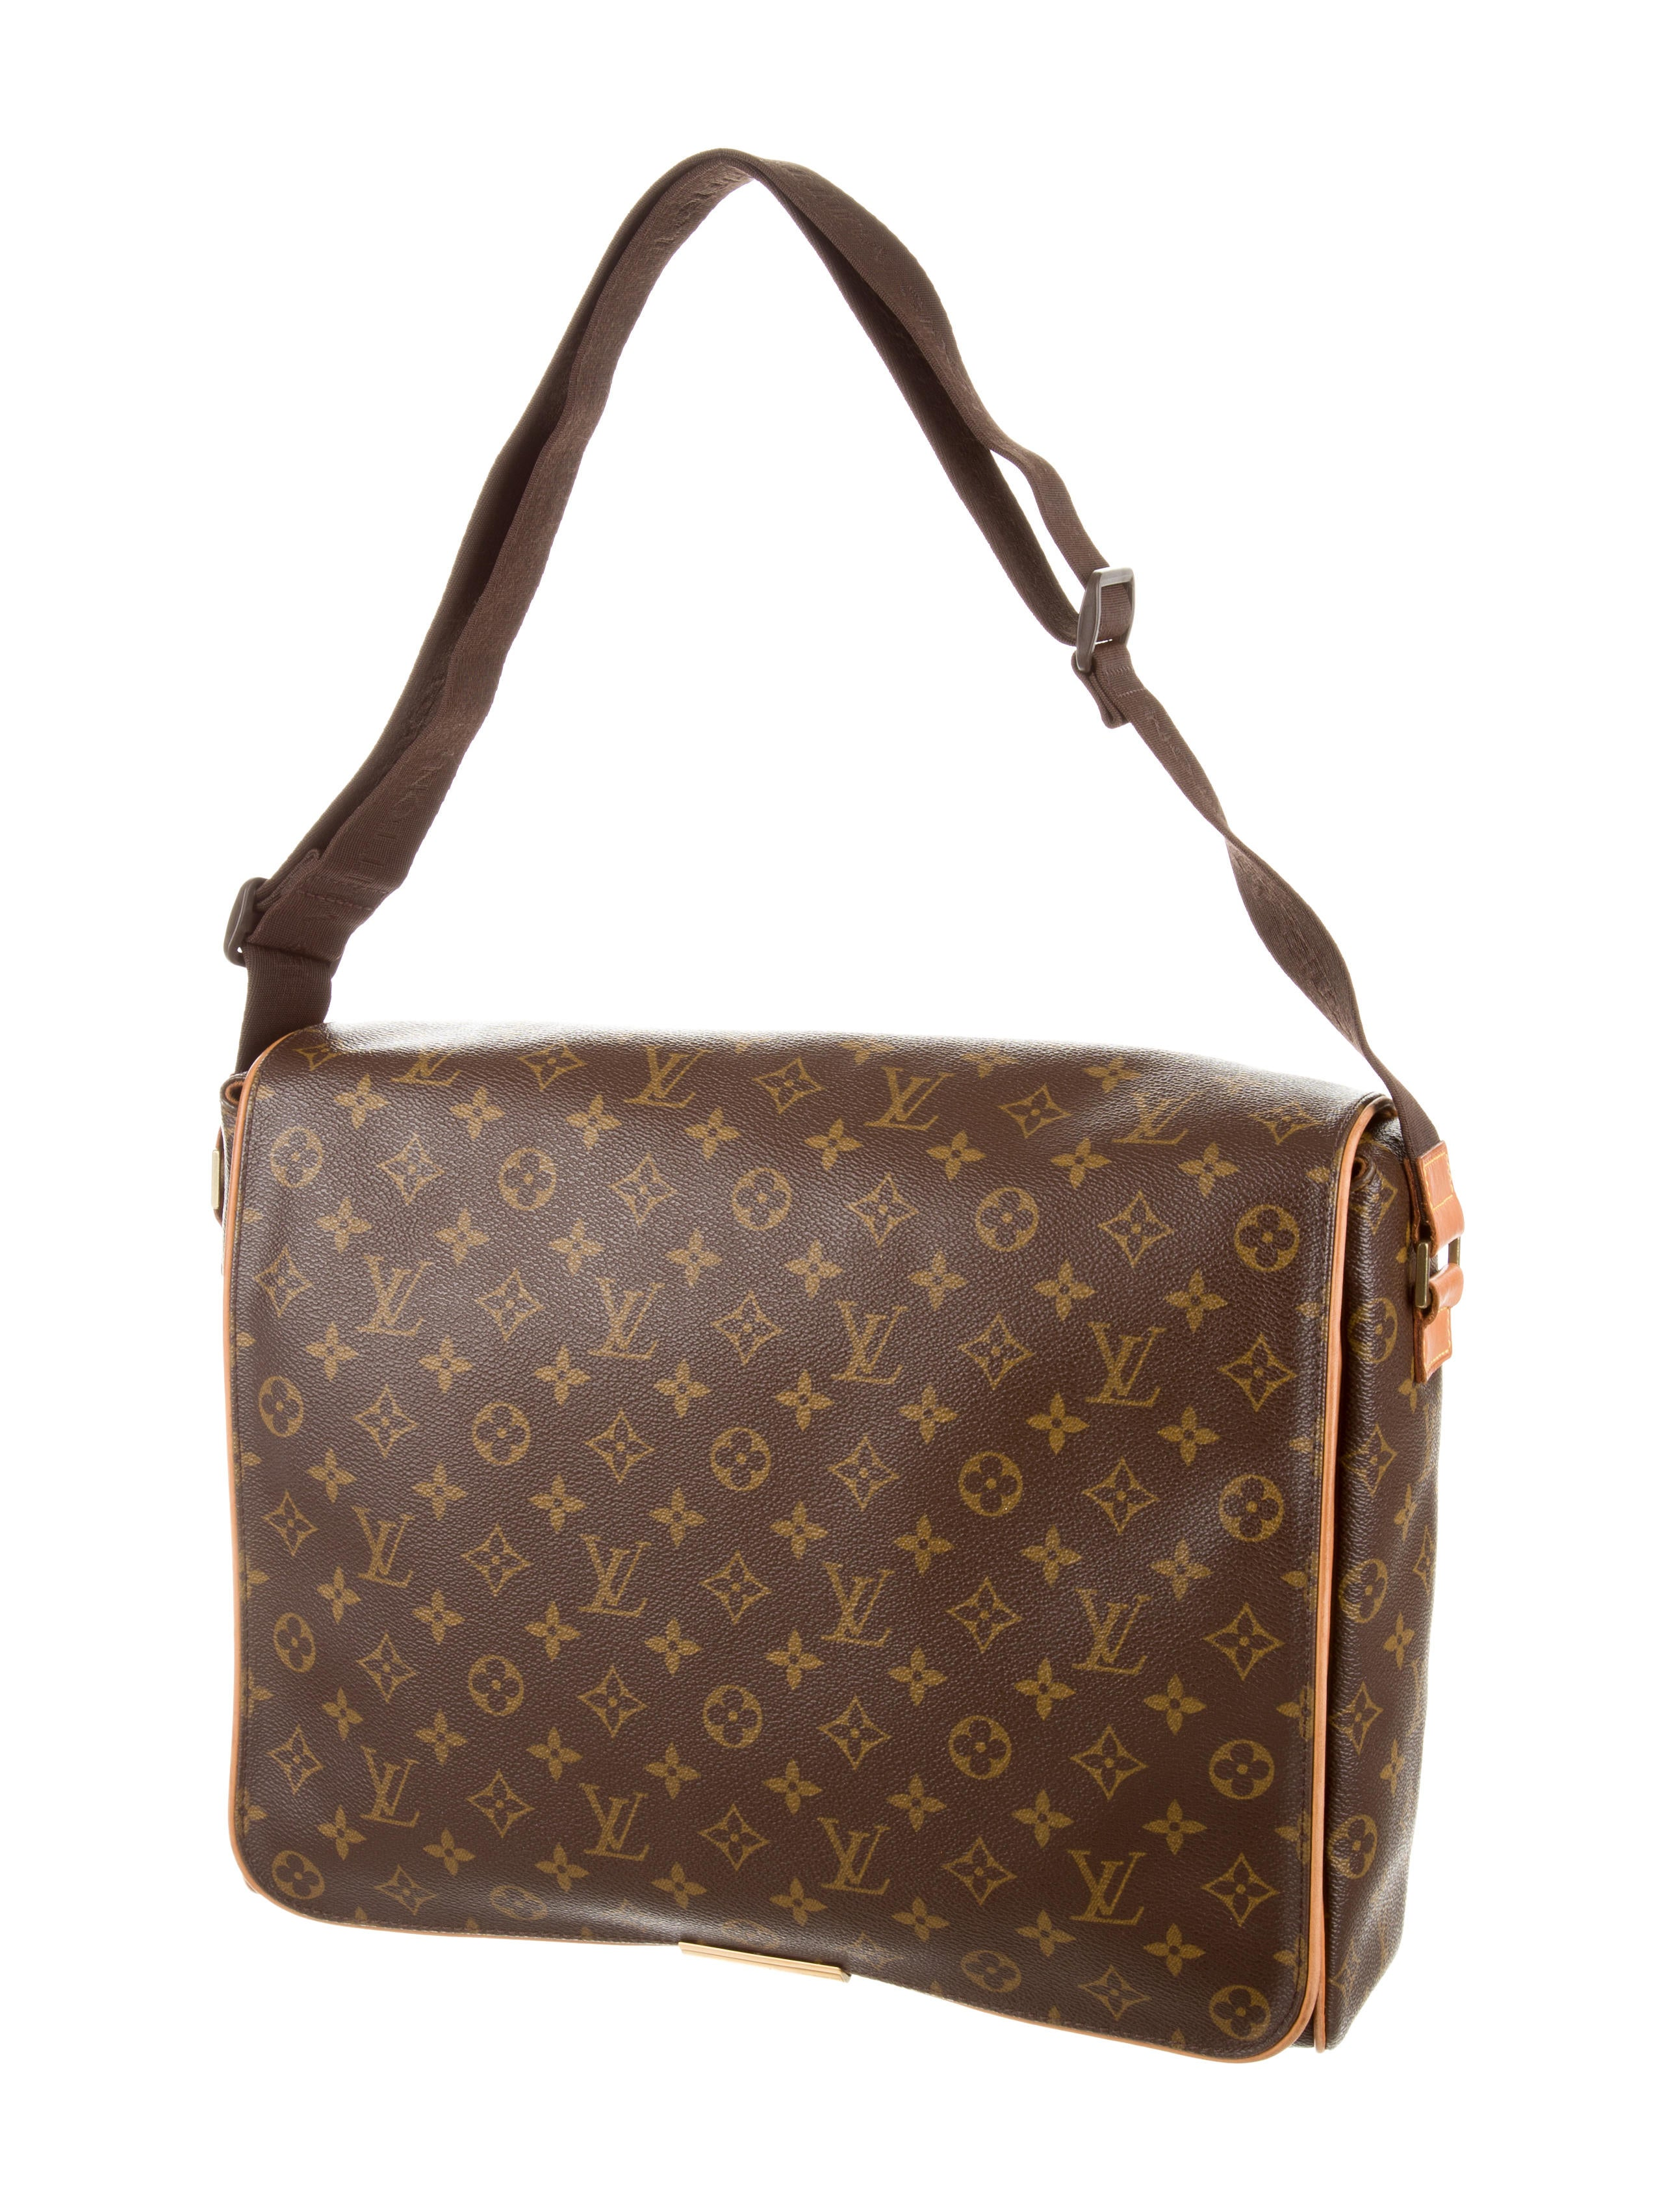 Excellent A Handbag Often Retails For About $1,000 To $2,000 At Brands Like Louis Vuitton  Women And Men Currently, Its Products And Sales Tilt Primarily Toward Womens Products These Made Up Over 85% Of The Companys Revenues In Fiscal 2014